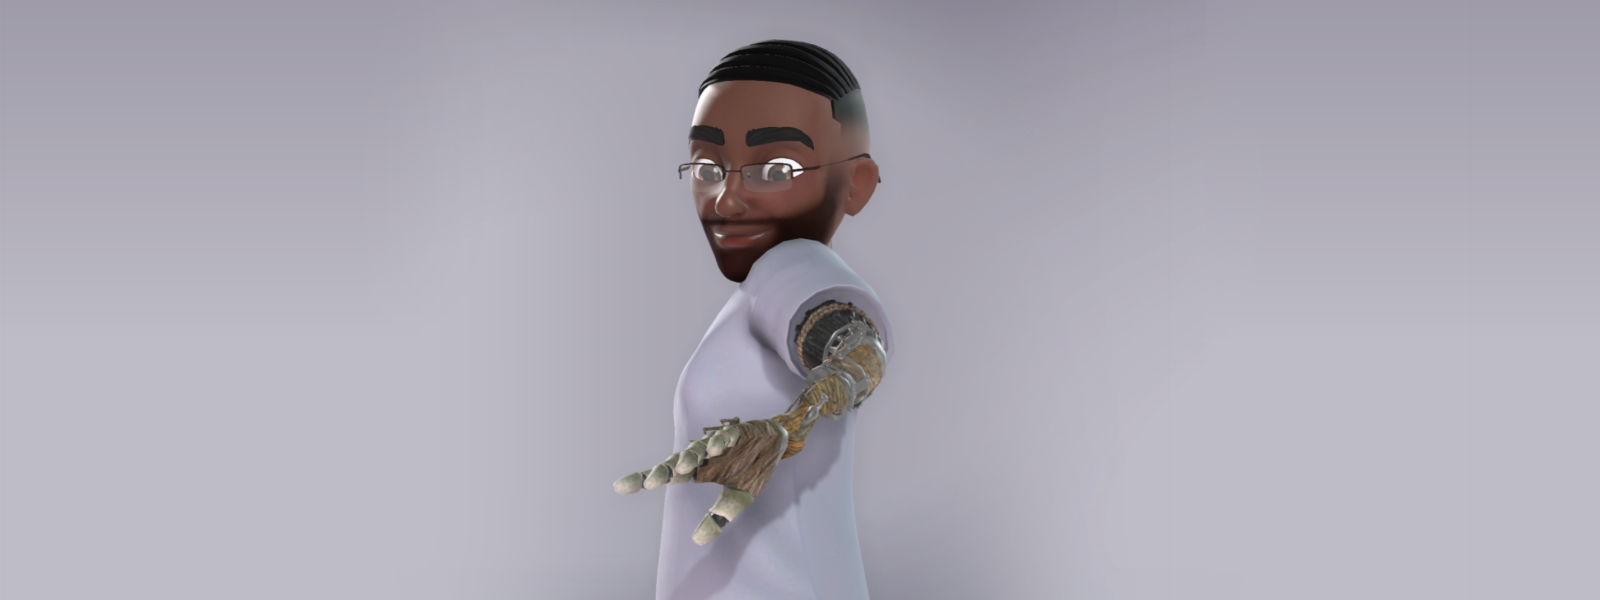 An Xbox avatar character looks at his Prosthetic Arm